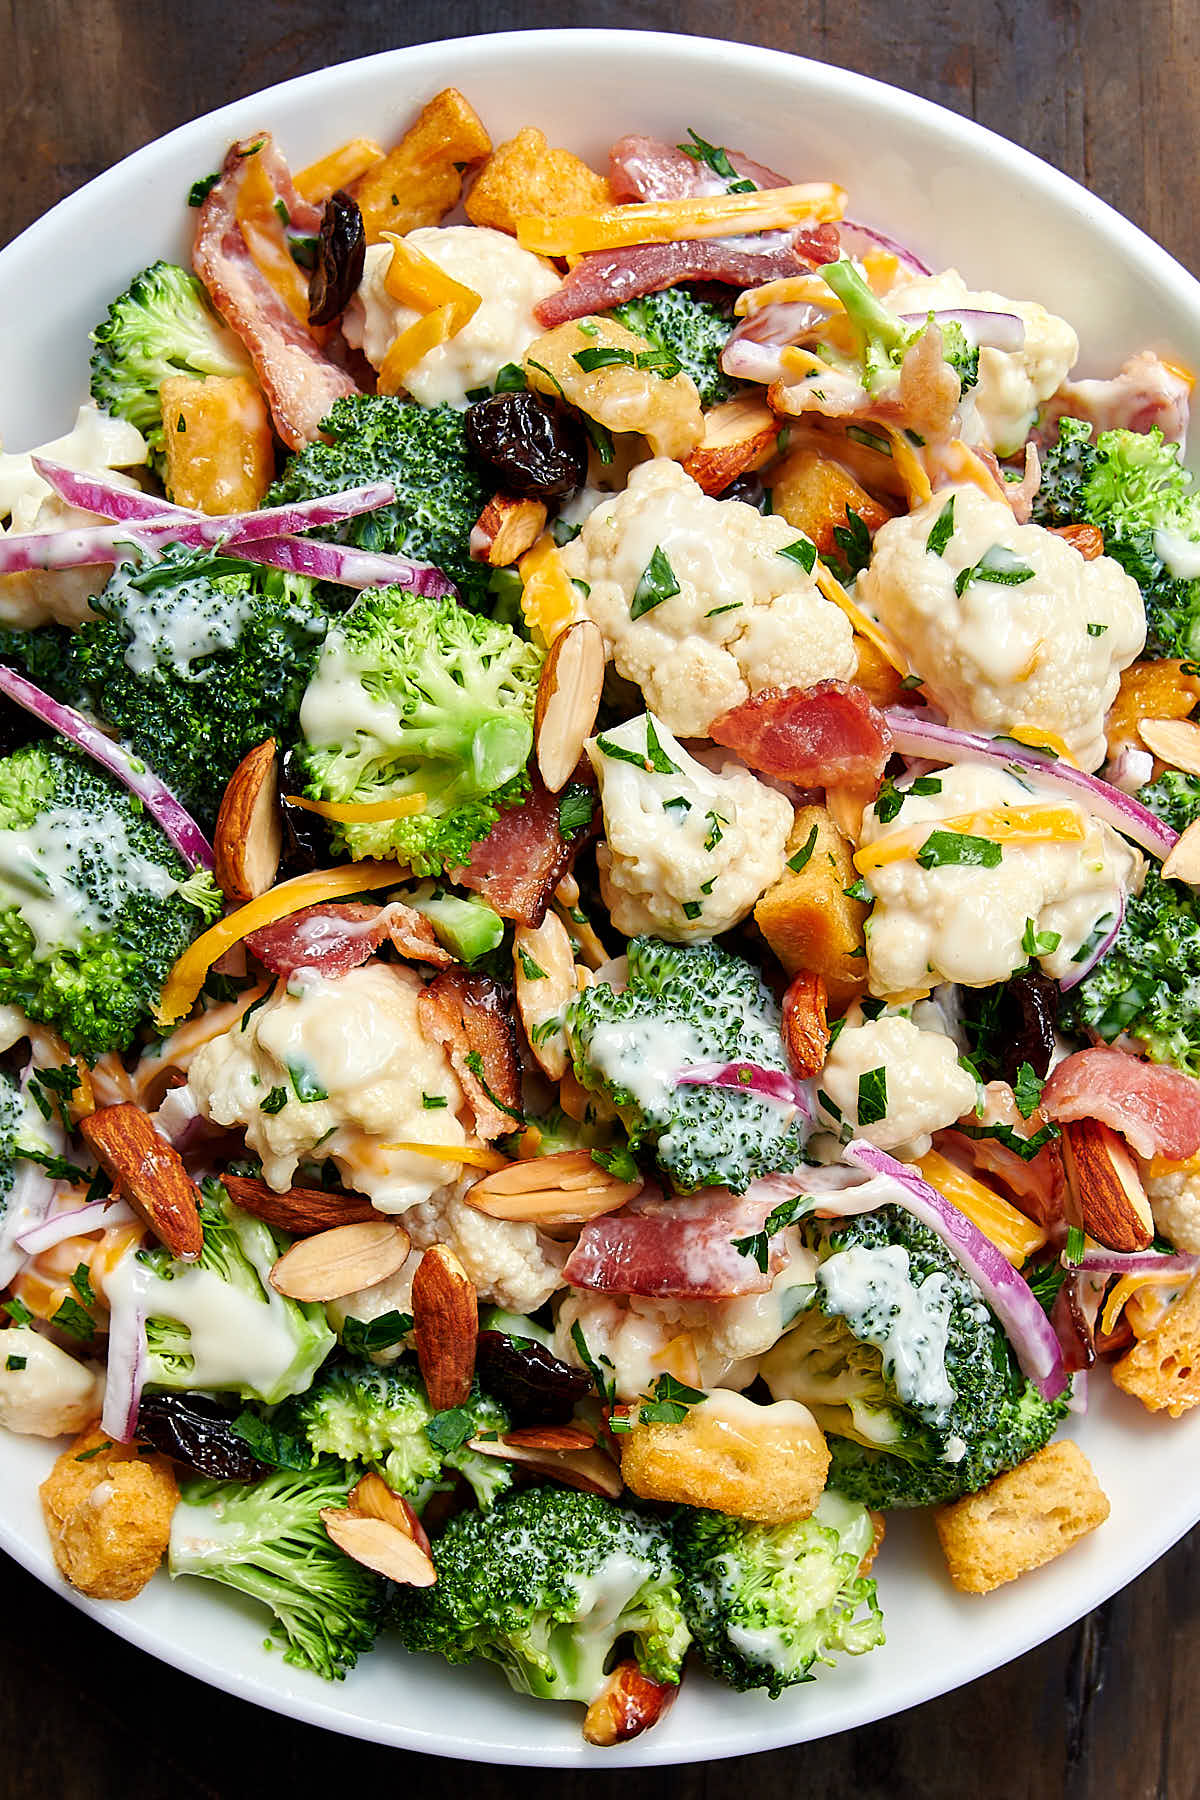 Broccoli and cauliflower salad (recipe) tossed with creamy dressing in white bowl.